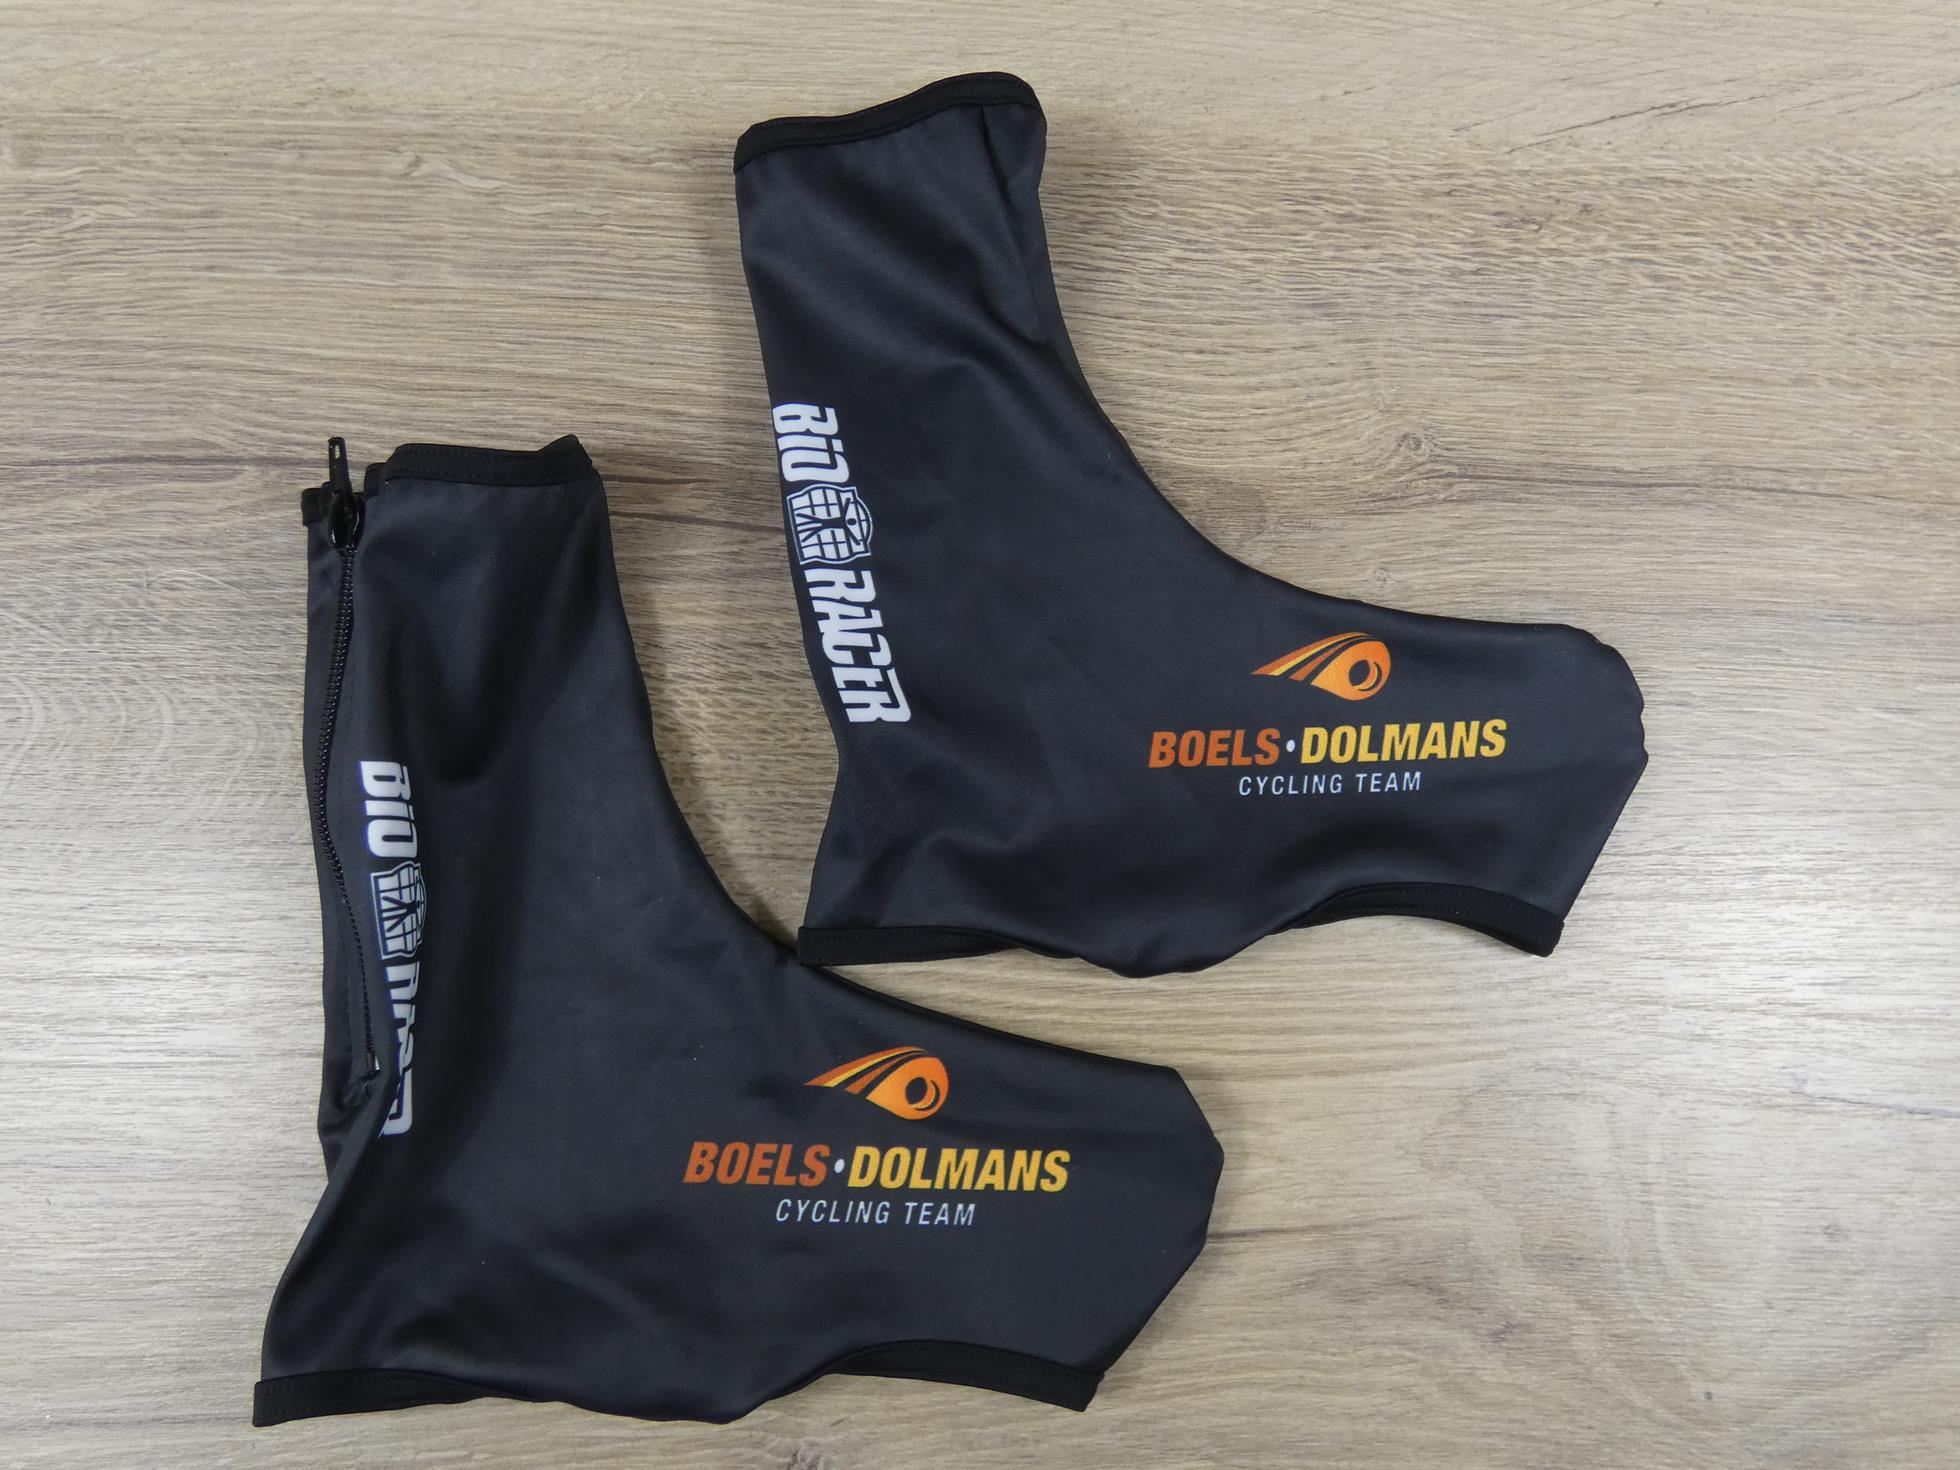 Aero Shoe Covers - Boels Dolmens 00001287 (1)